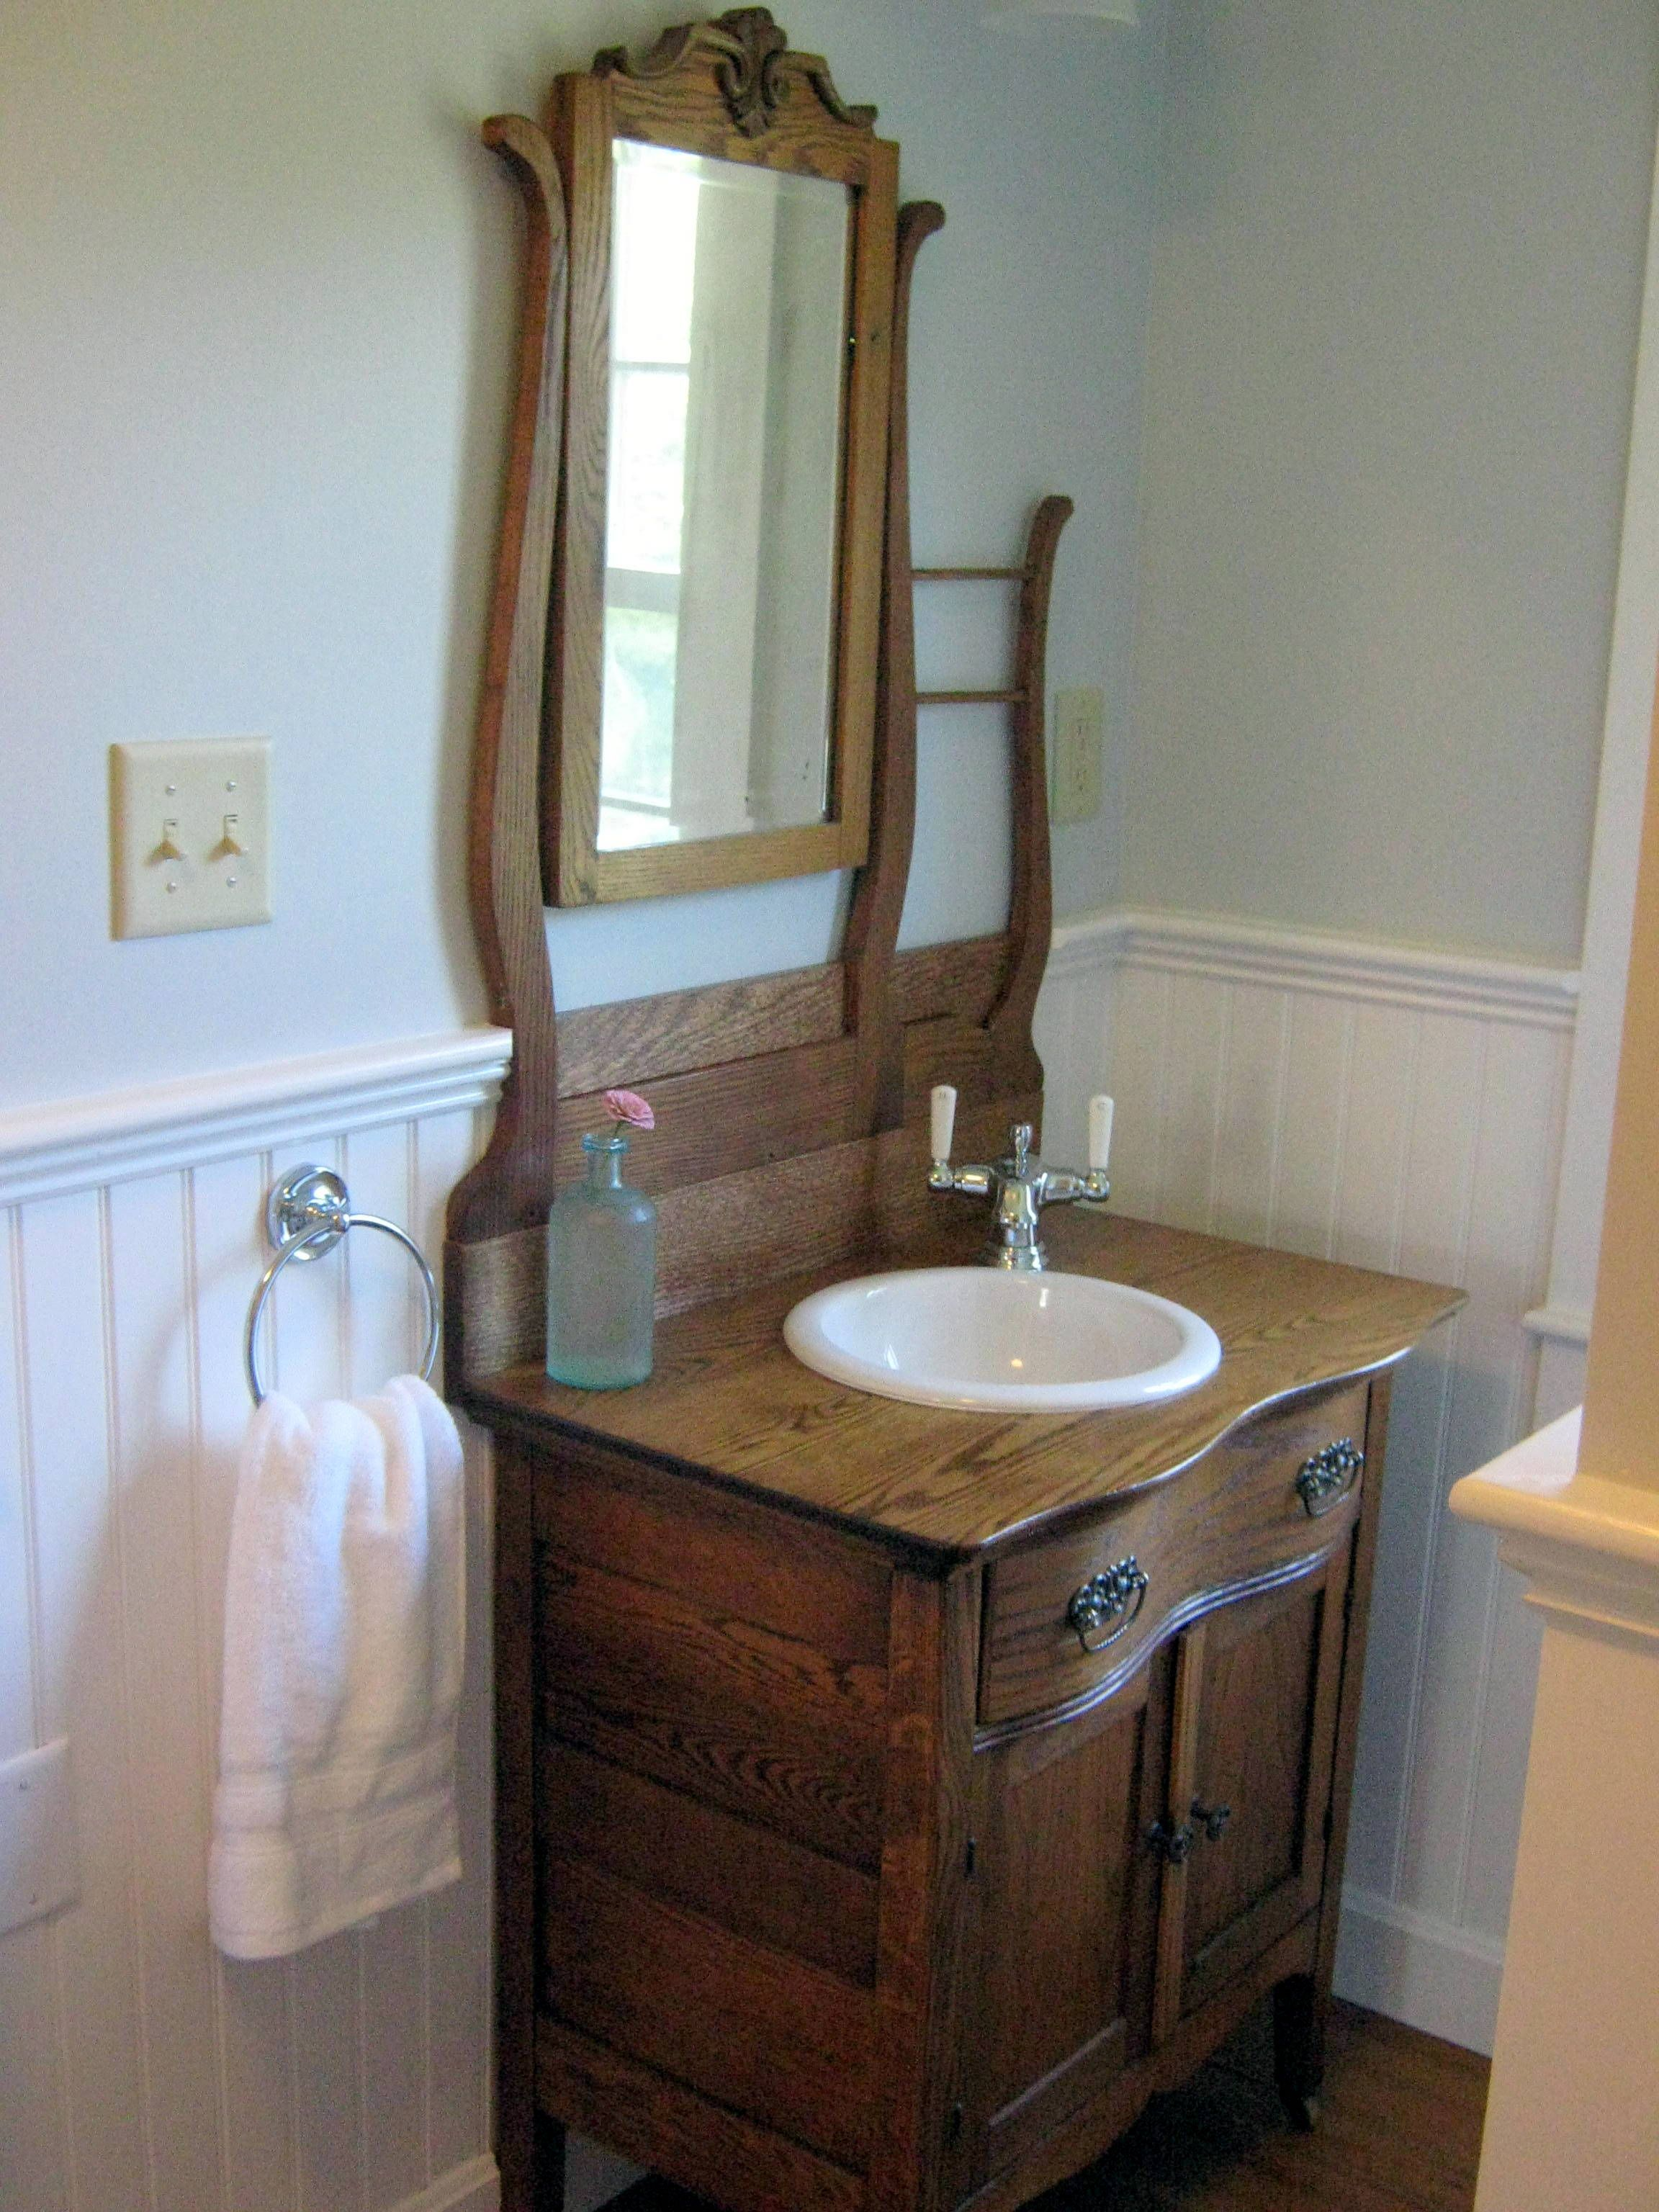 Antique Oak Hotel Commode Re Purposed Into A Bathroom Vanity, Just Had To  Raise